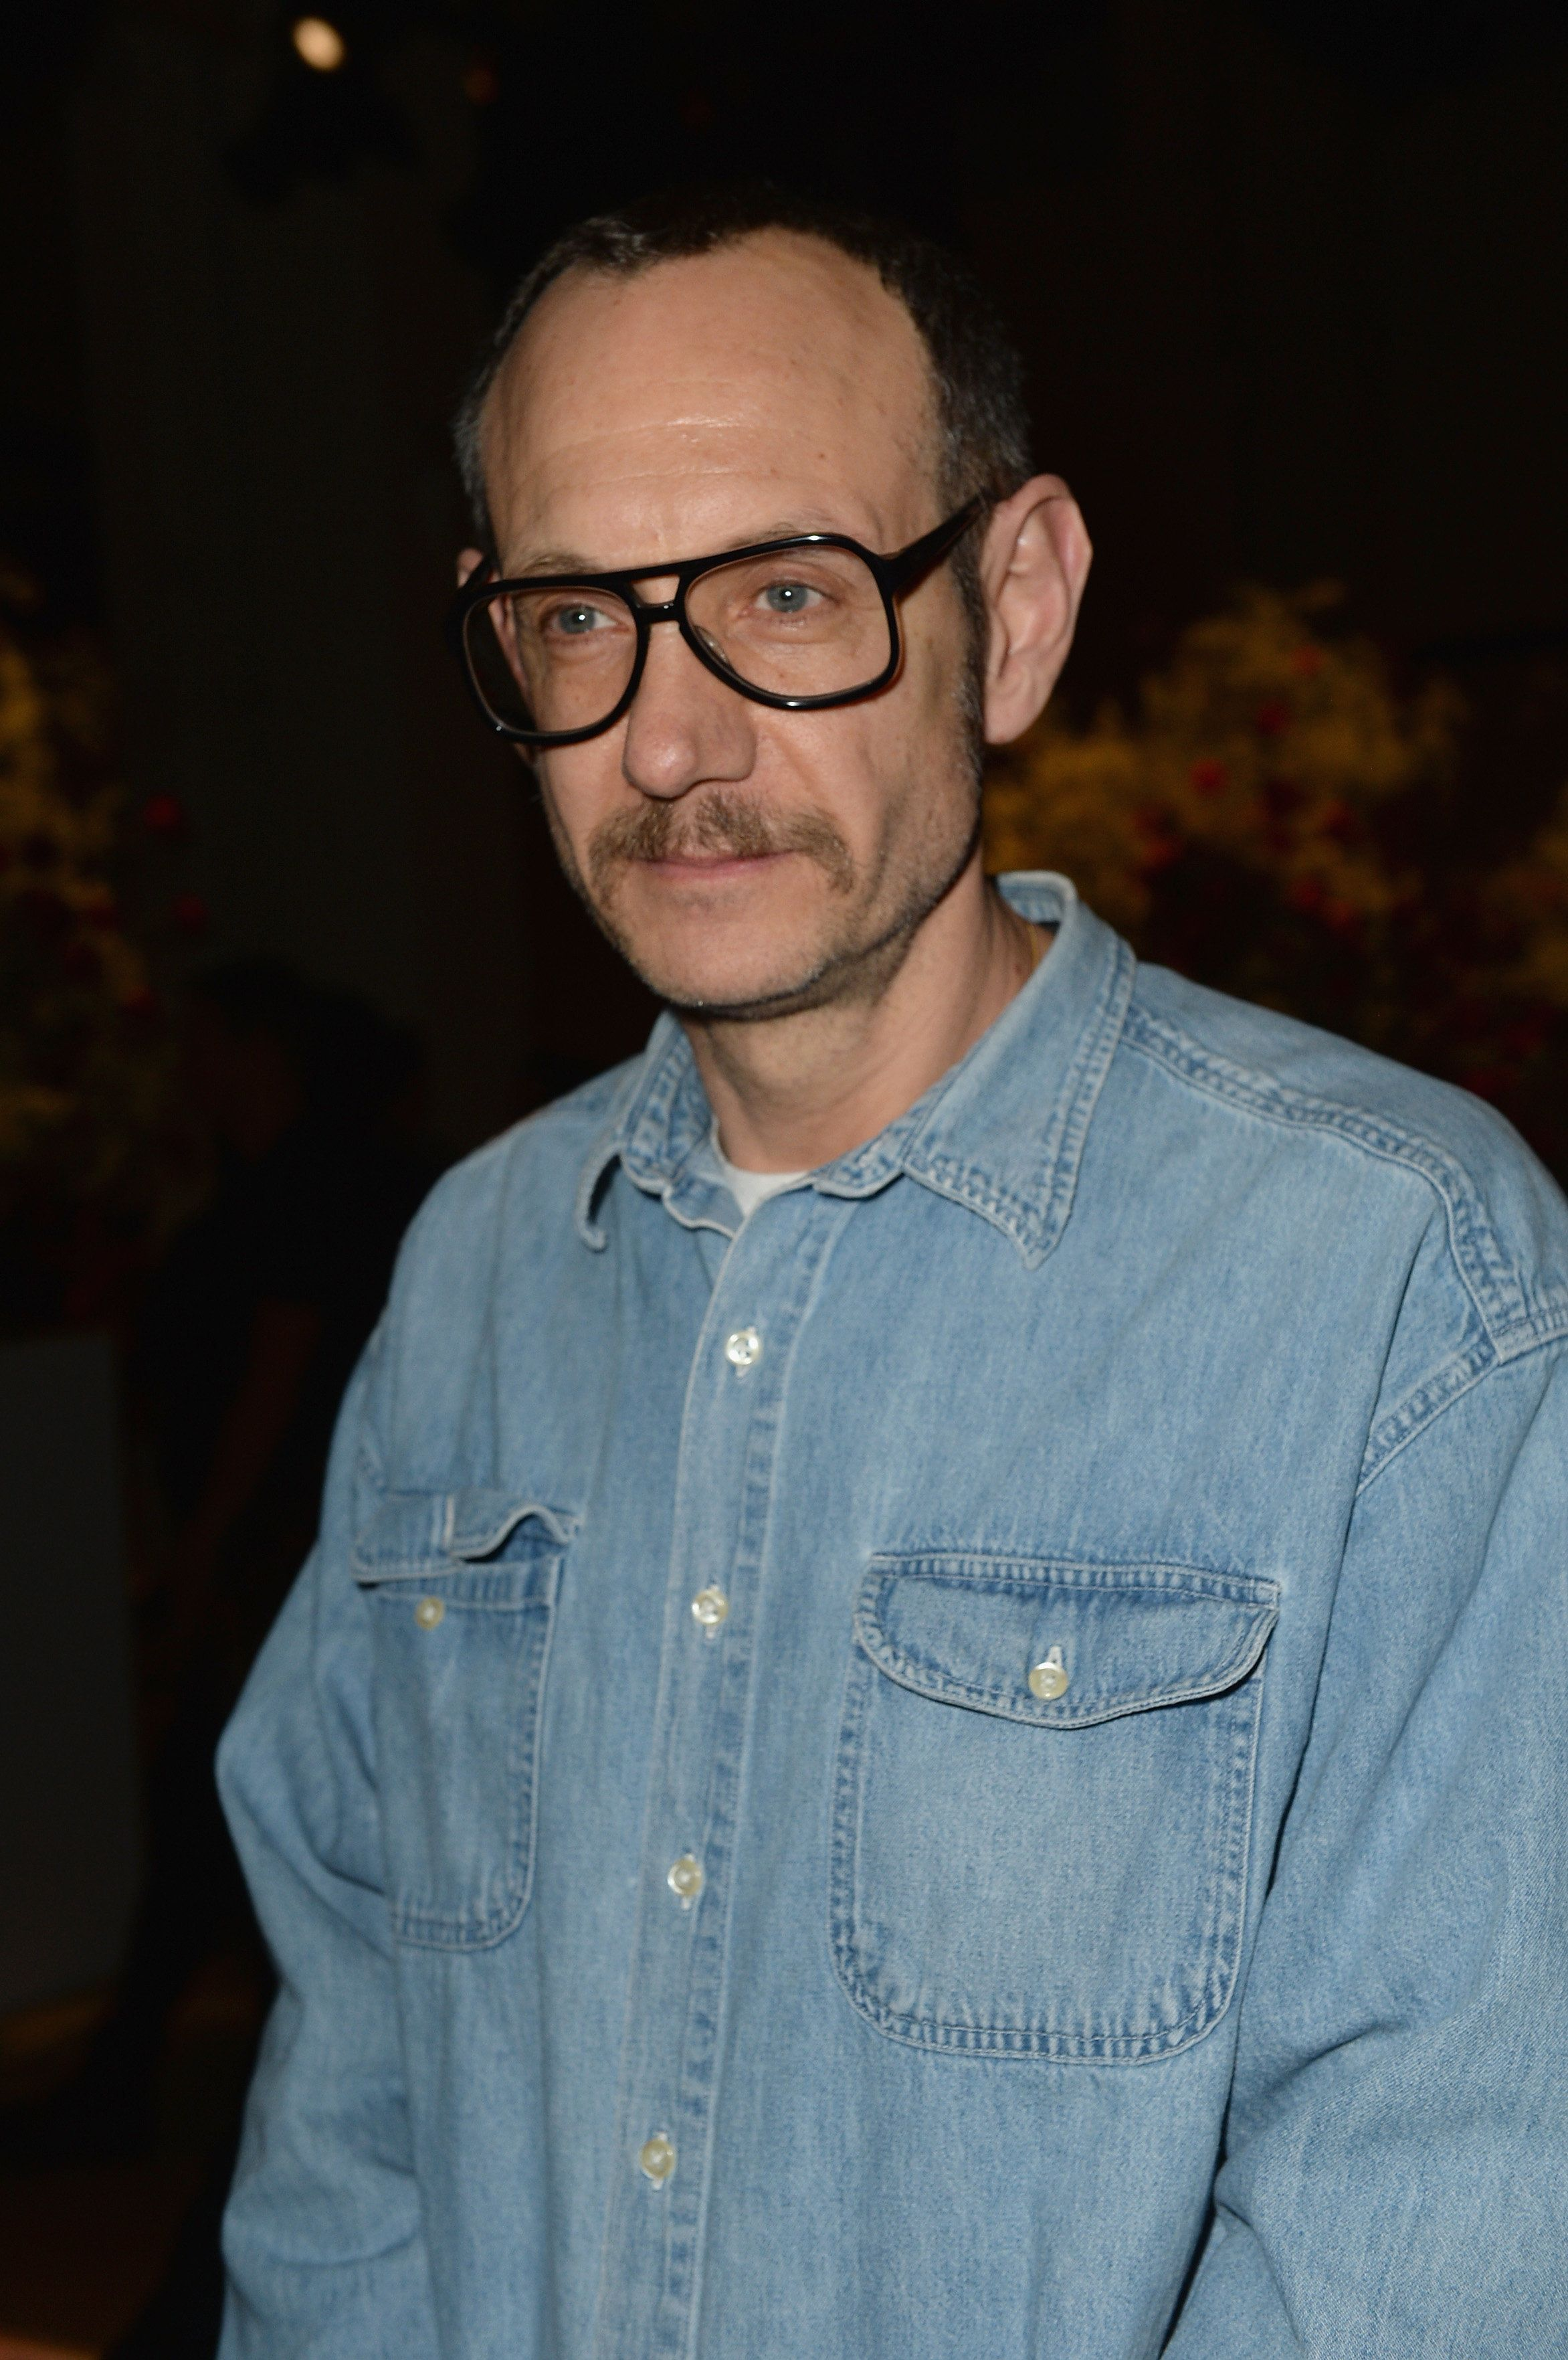 NEW YORK, NY - FEBRUARY 09: Photographer Terry Richardson attends the Adam Selman fashion show during, New York Fashion Week at Gallery 2, Skylight Clarkson Sq on February 9, 2017 in New York City.  (Photo by Gustavo Caballero/Getty Images)